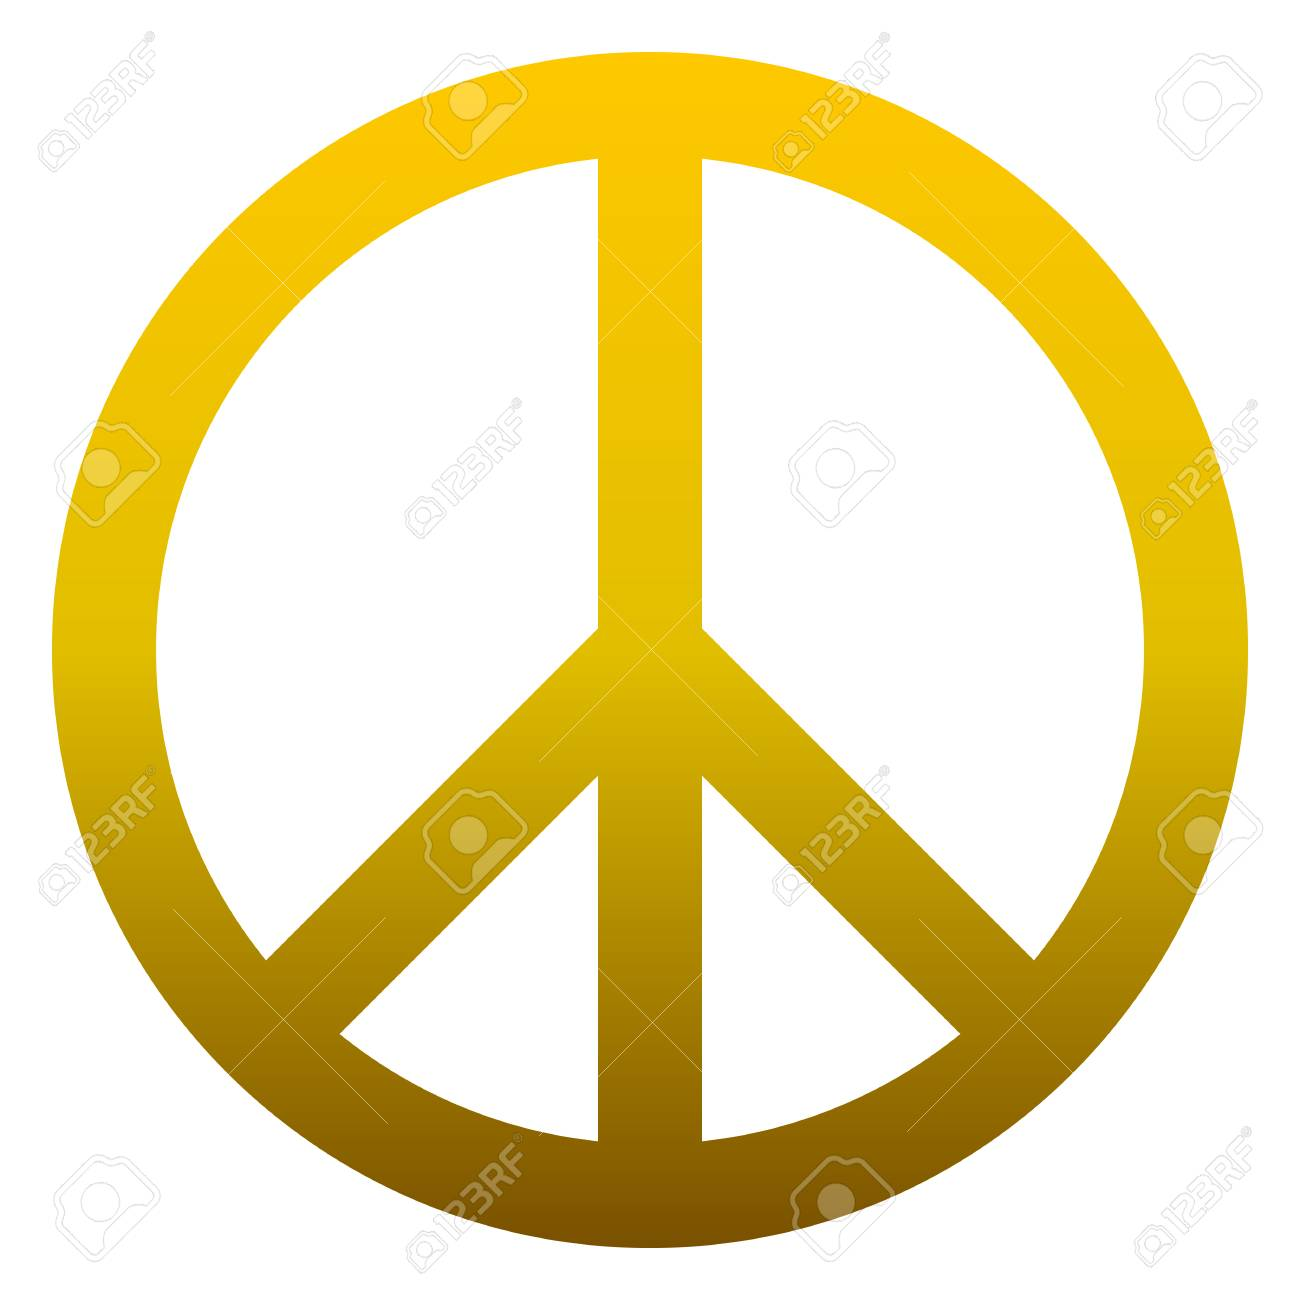 Peace symbol icon - golden simple gradient, isolated - vector illustration - 126785363